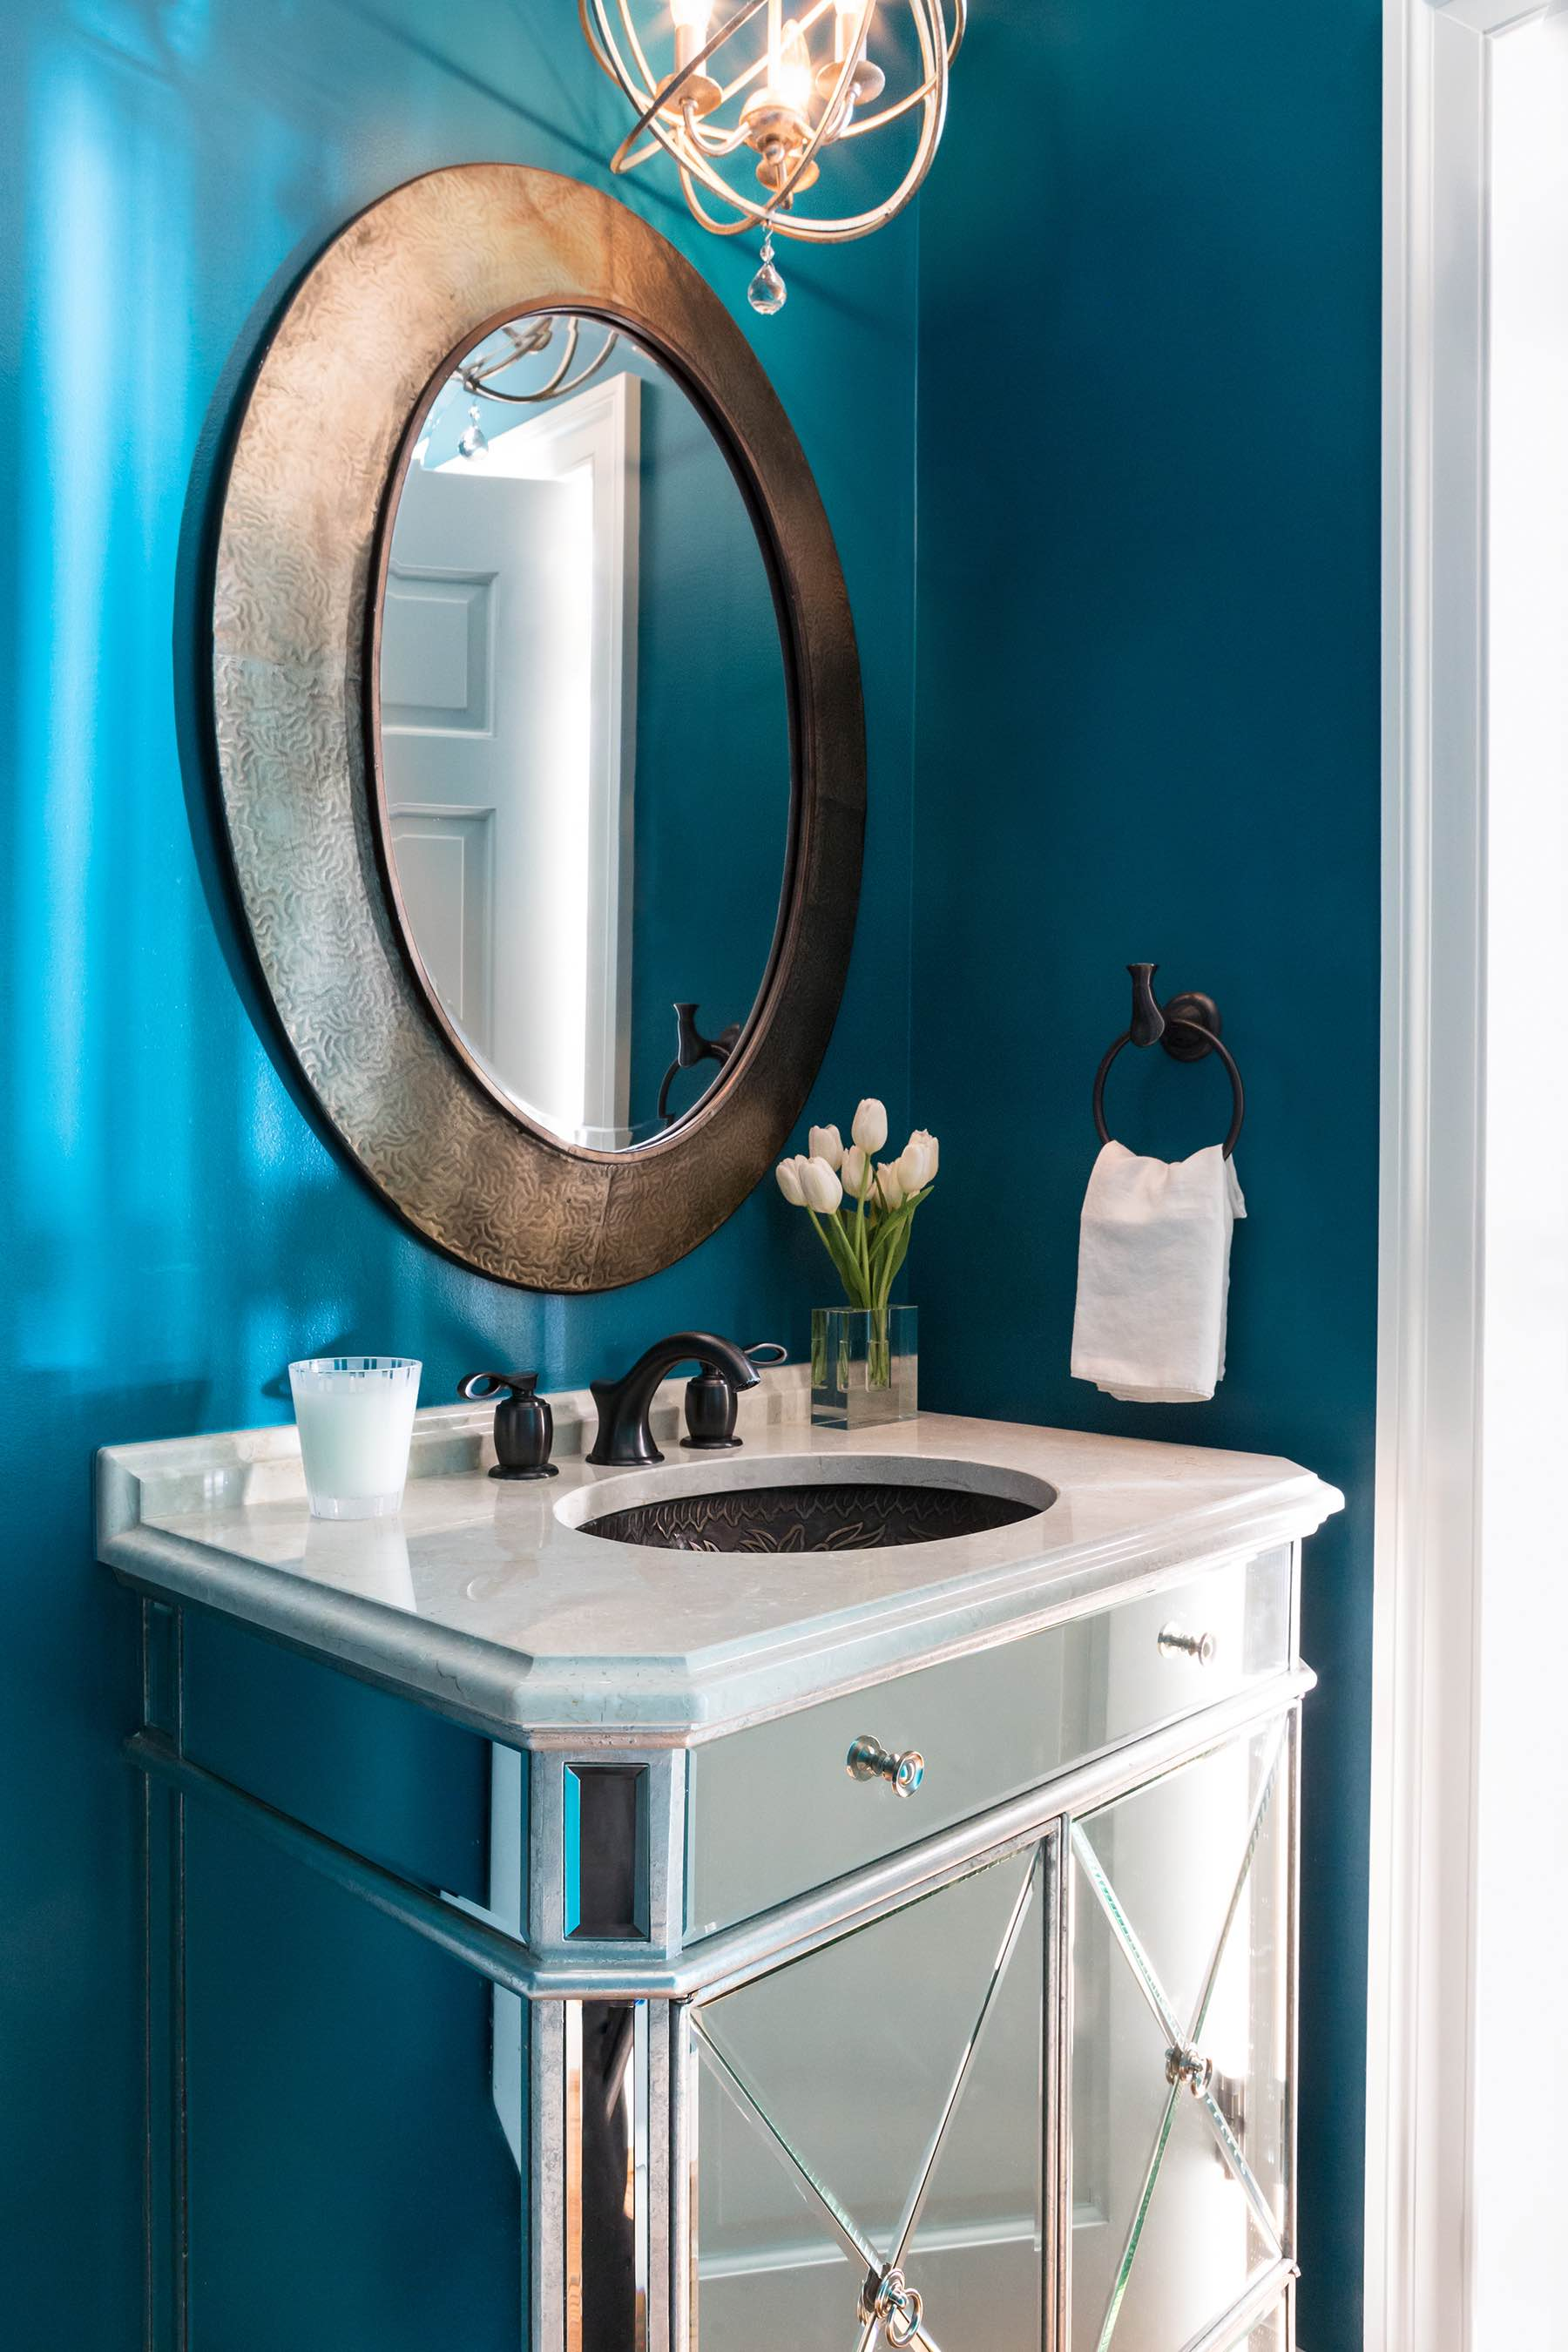 Powder room vanity with mirrored cabinets, teal high-gloss paint, marble vanity top, antiqued gold porthole mirror